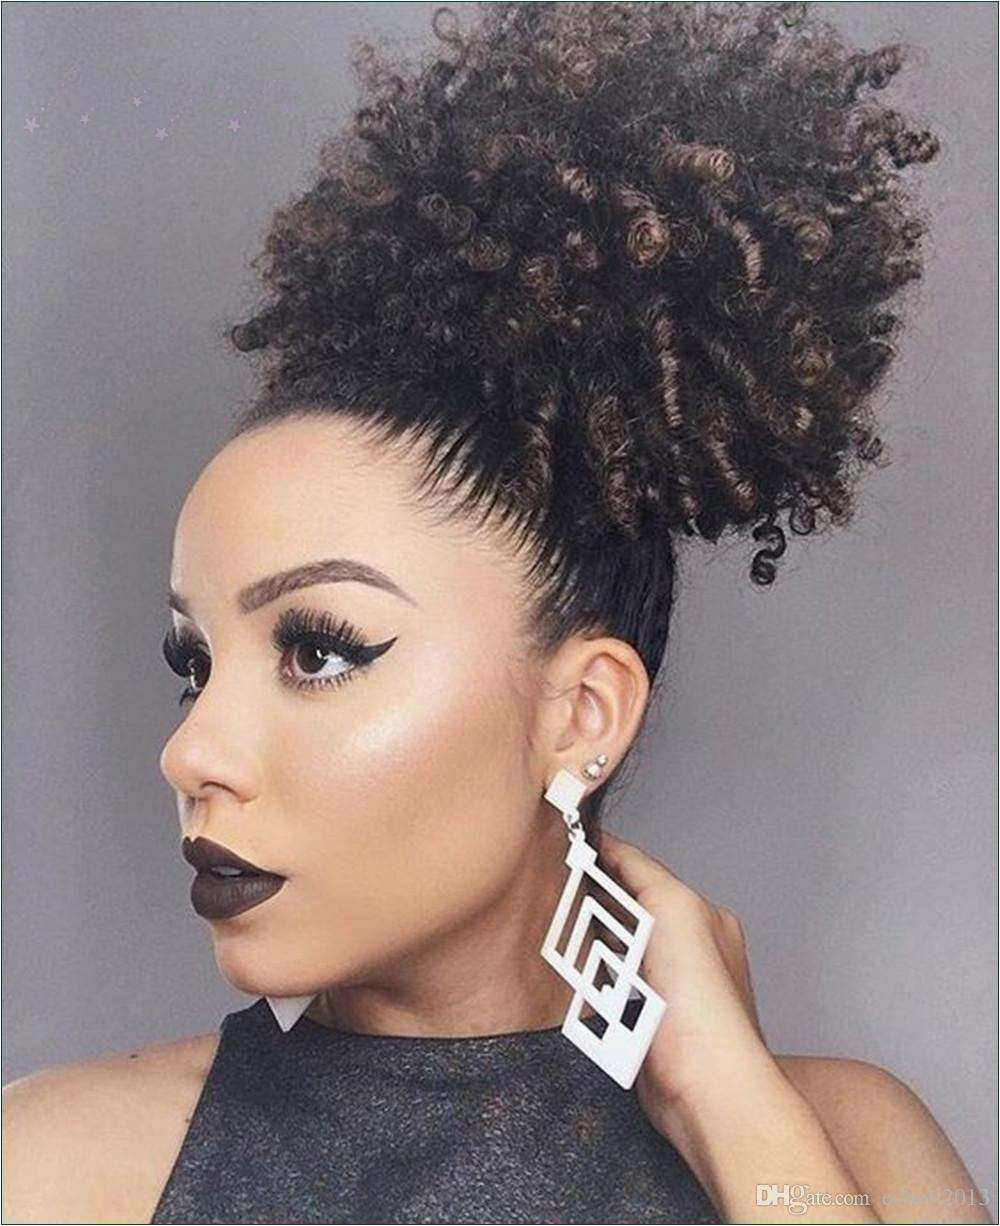 Black Hairstyles with Bangs and Ponytail Outstanding O36x Ponytail Hairstyles Wedding Hairstyle Wedding Hairstyle 0d Journal